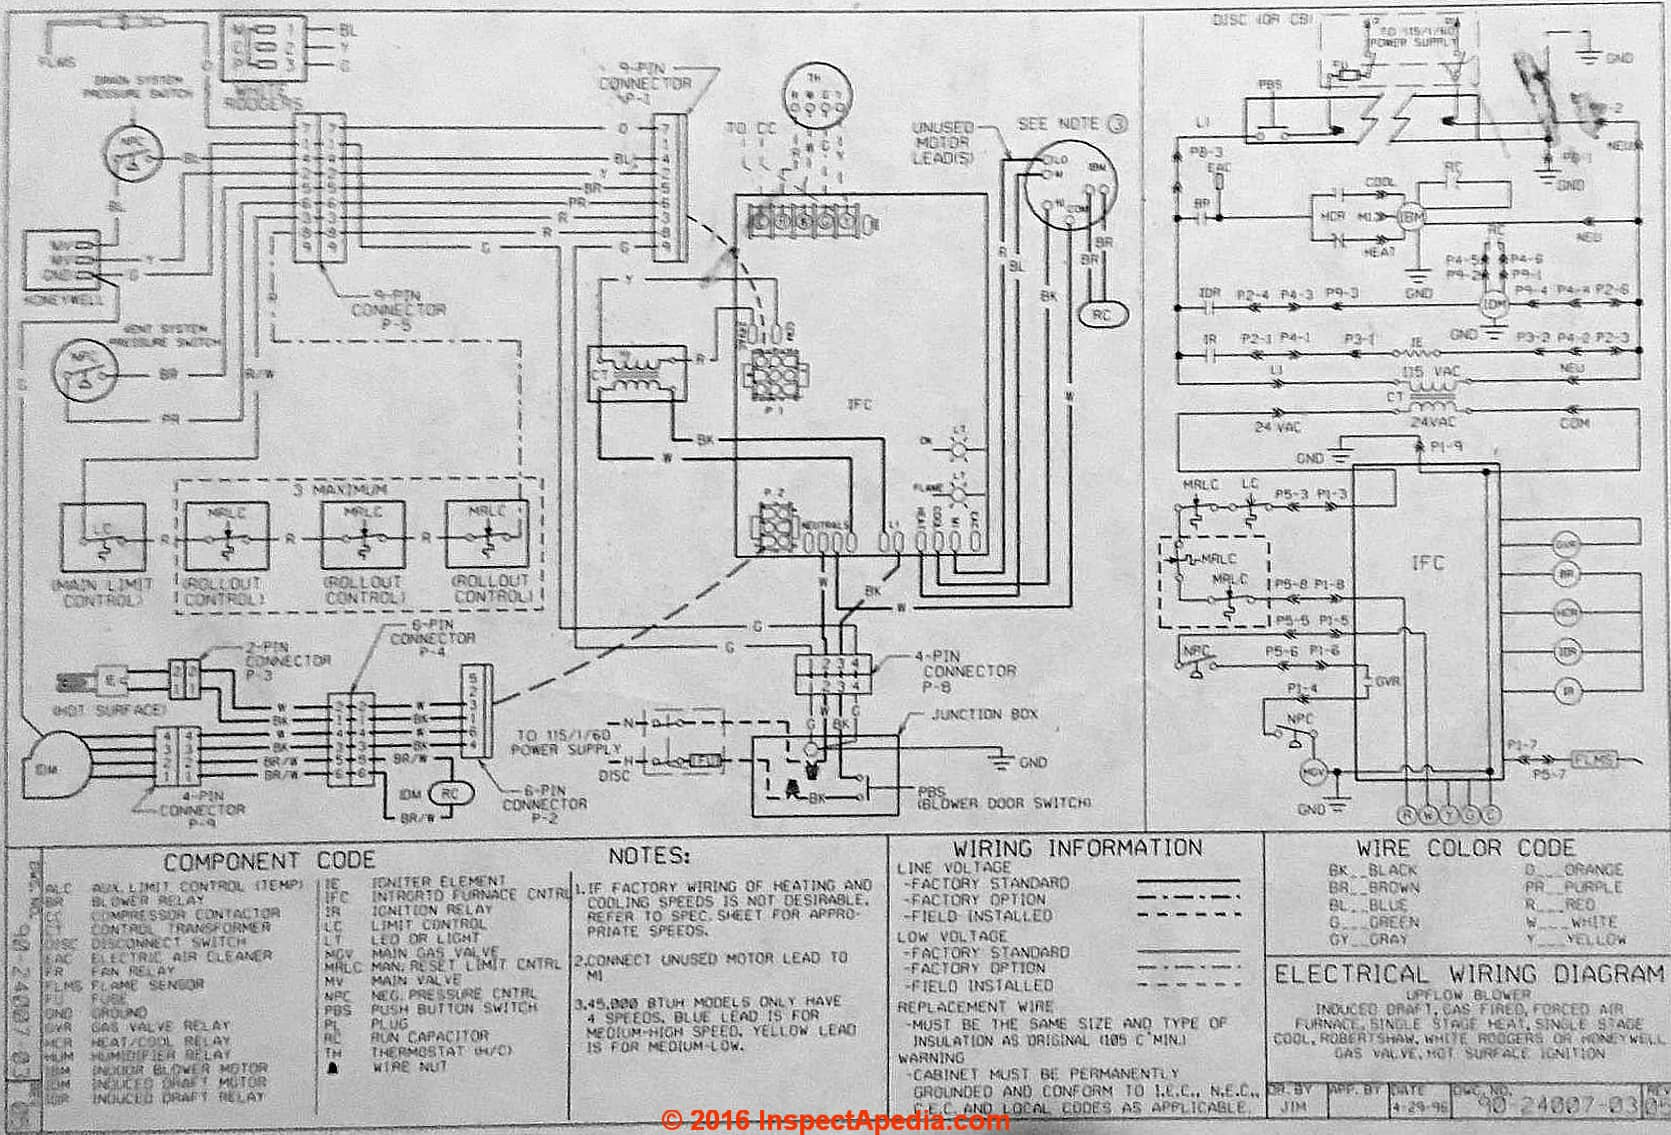 Air Conditioner Heat Pump Faqs Geo Force Wiring Diagrams Rheem Ahu Diagram Typical At